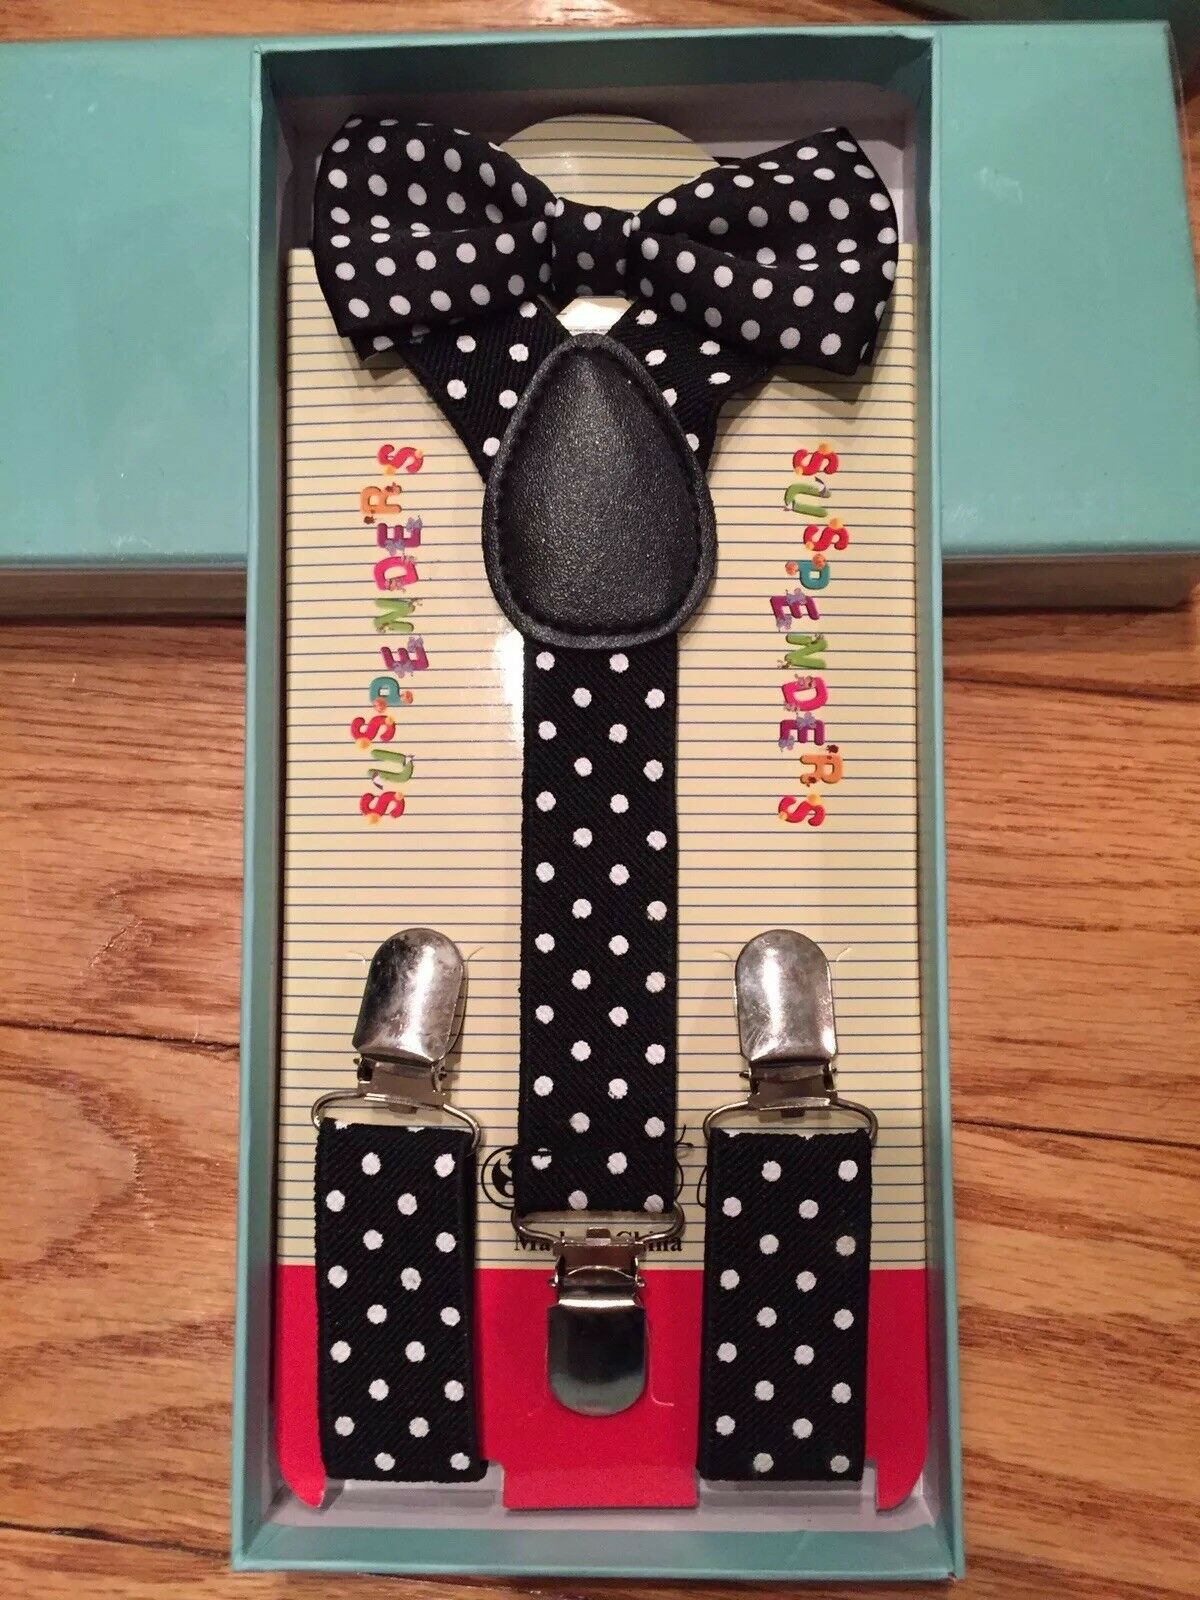 Suspenders and Bow Tie Black White Polka dots Boxed Gift Set Toddler Kids